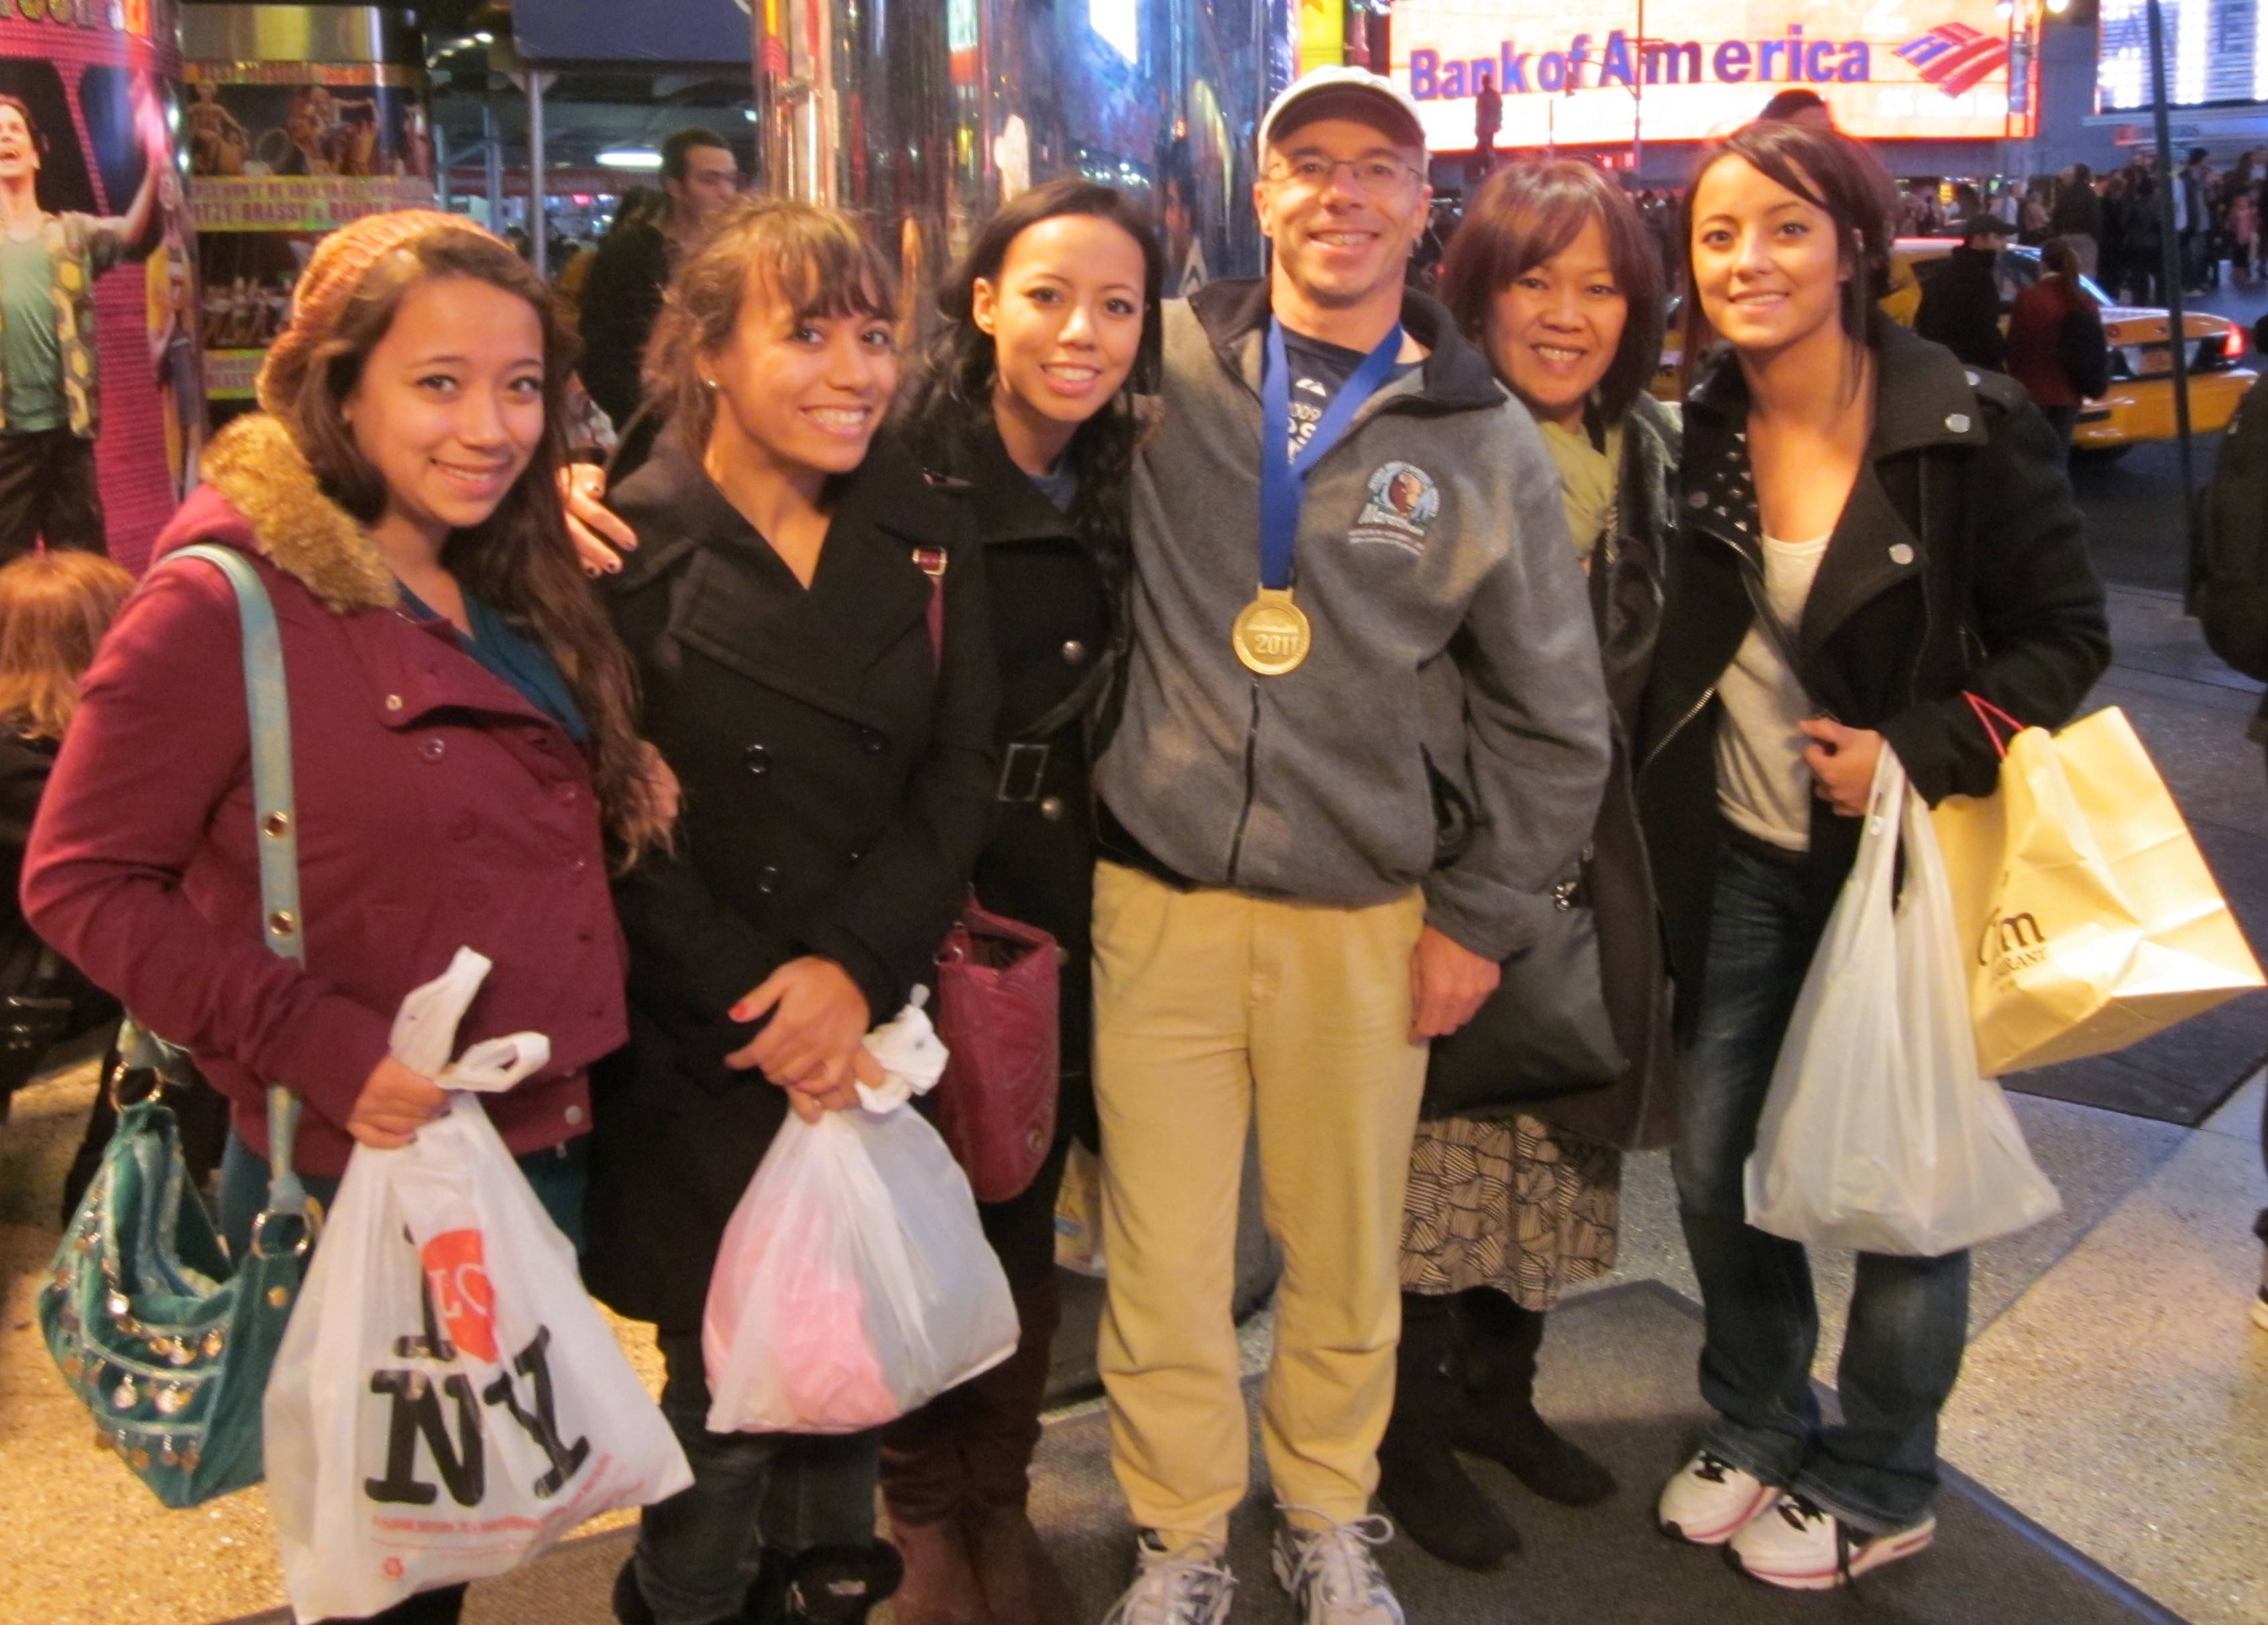 Tom Minichiello celebrates his completion of the New York City Marathon in November 2011 with his family at Times Square. Seen with him are daughters Michelle, now 17, Susan, now 25, Amy, now 24, his wife Suphan and daughter Leslie, now 22.